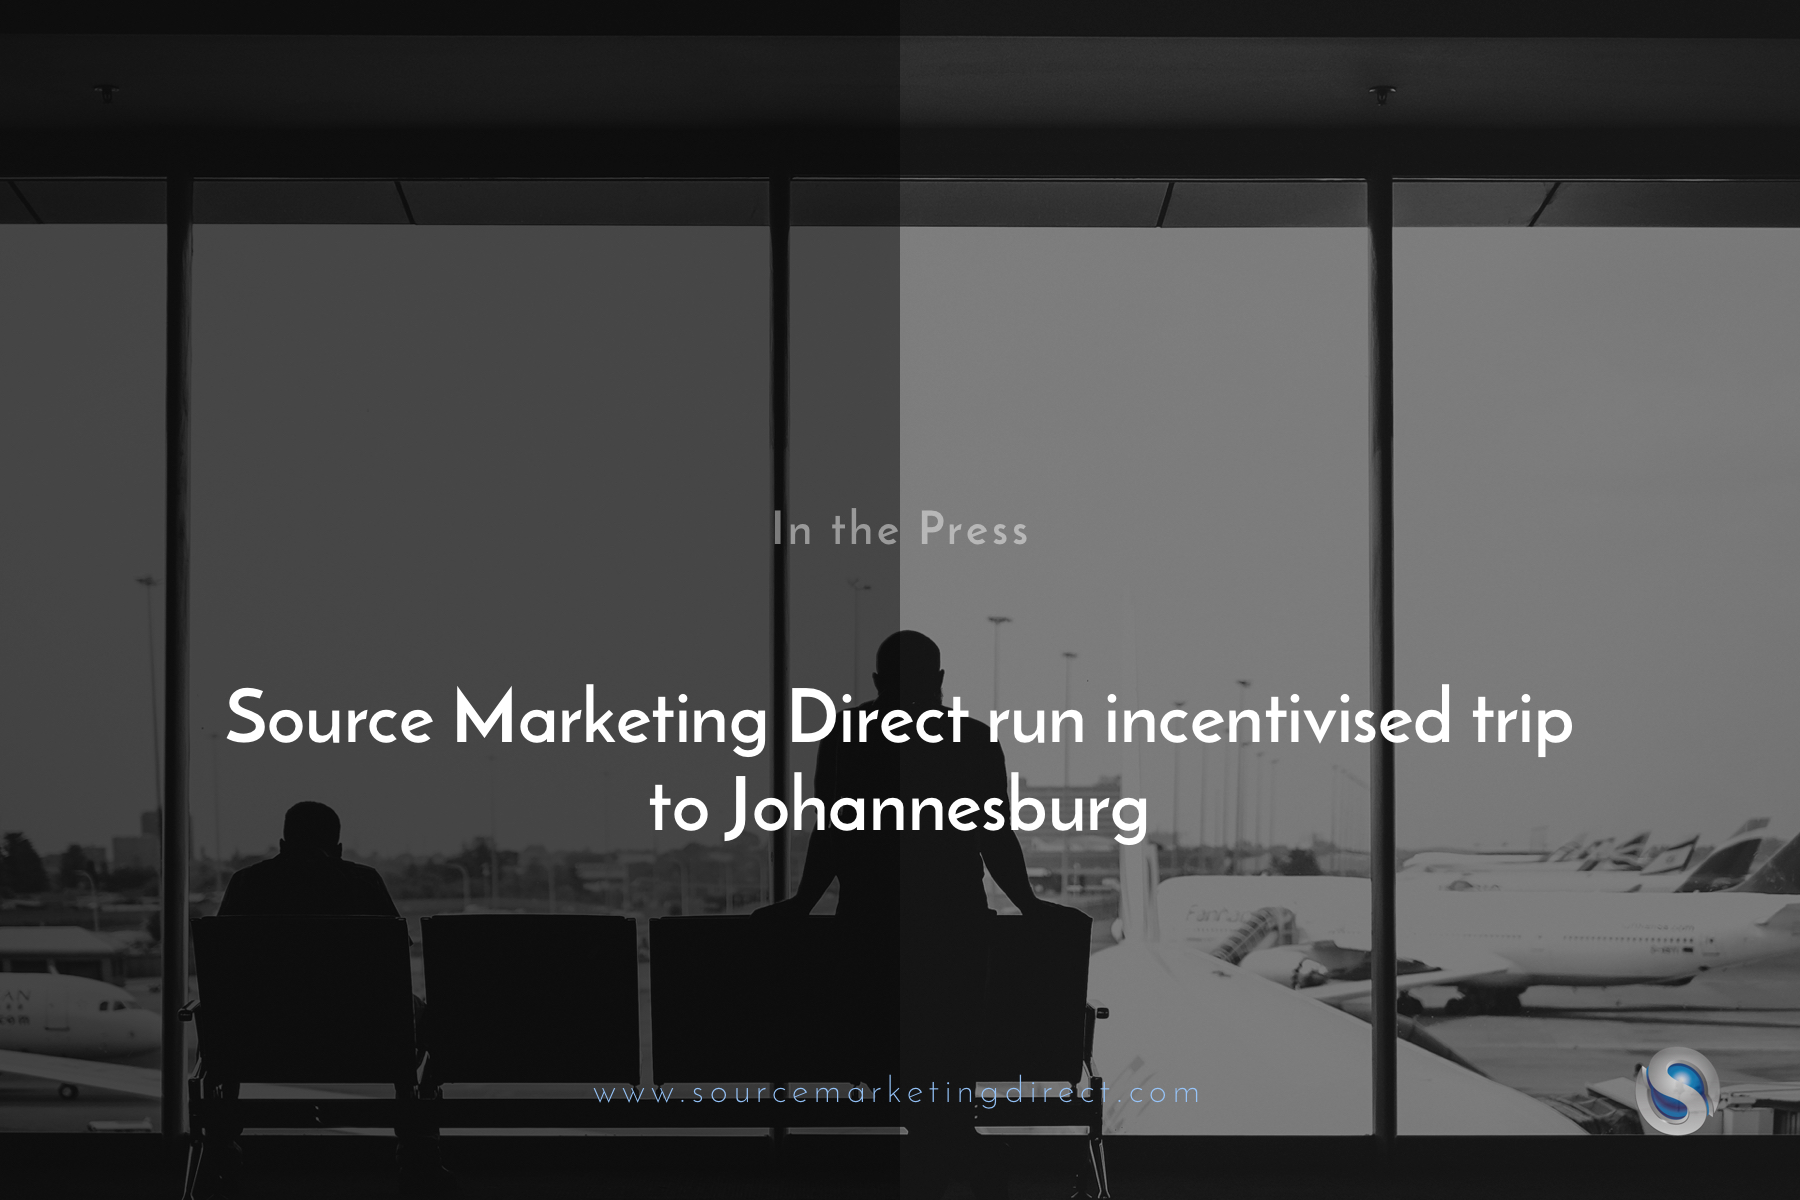 Source Marketing Direct run incentivised trip to Johannesburg